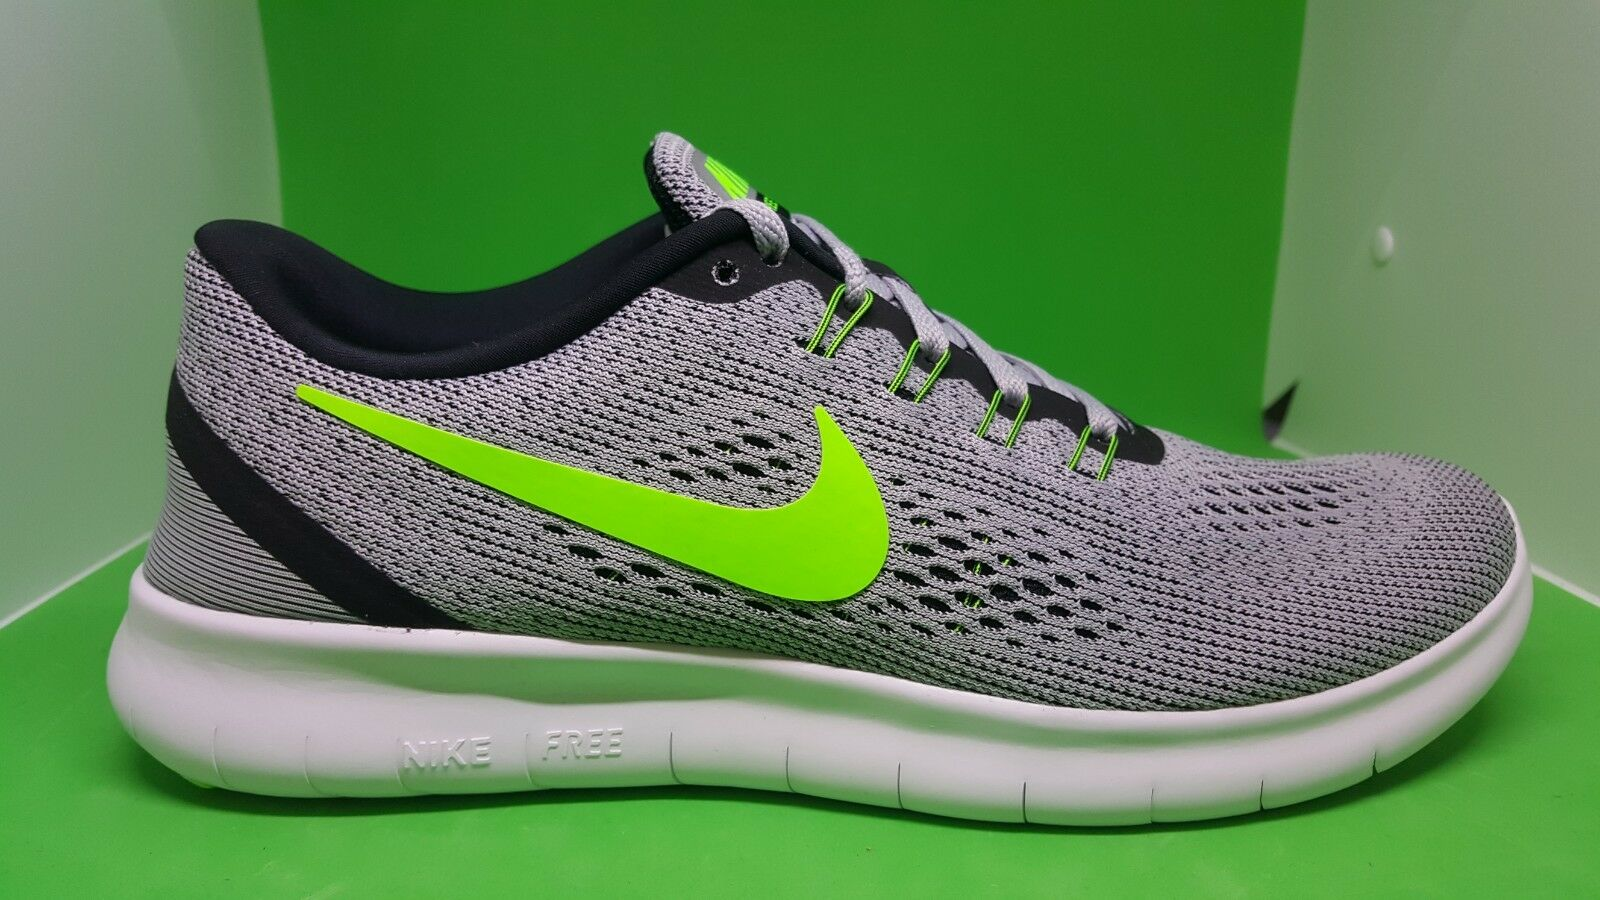 Nike Free RN Platinum Electric Green 831508-003 Running Shoes Men's Multi Size